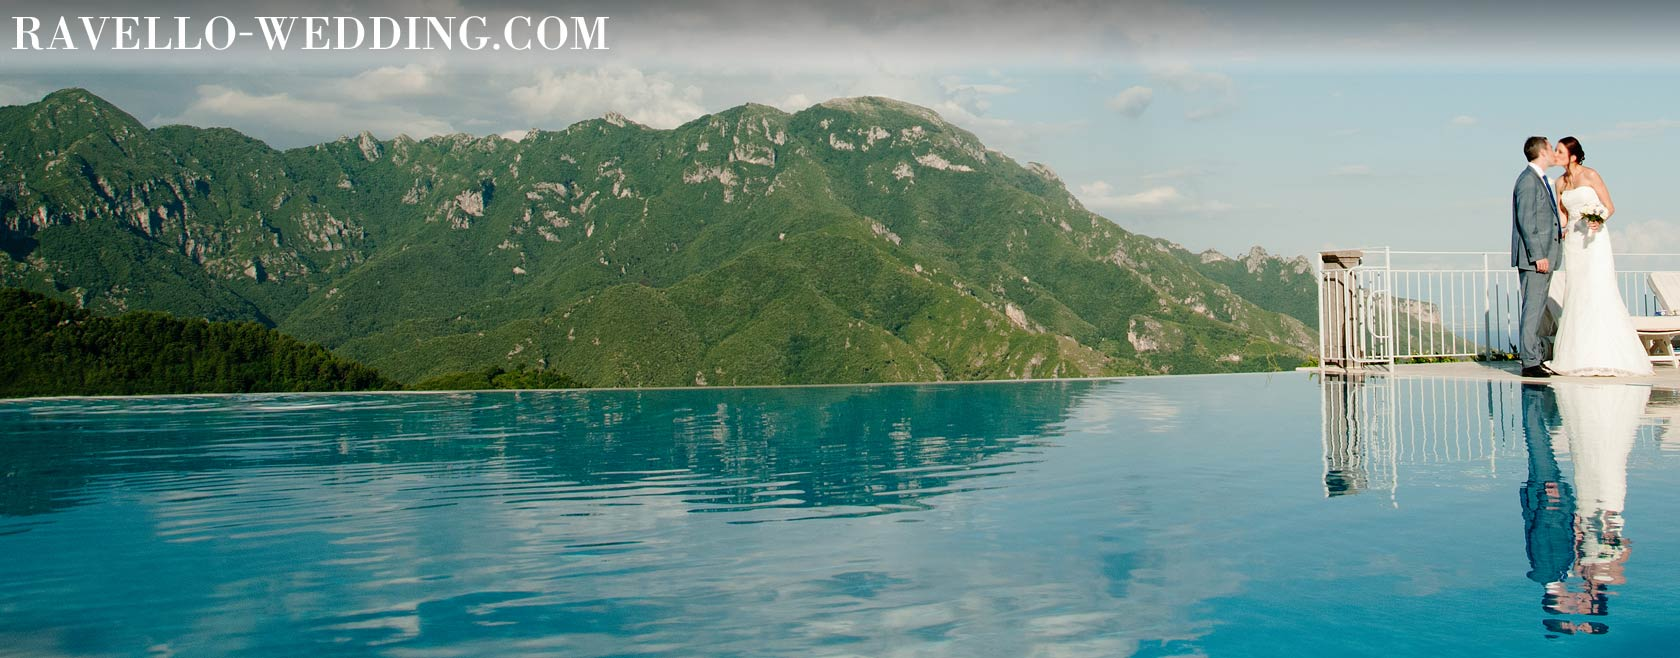 Amalfi Coast Wedding Venues | Ravello